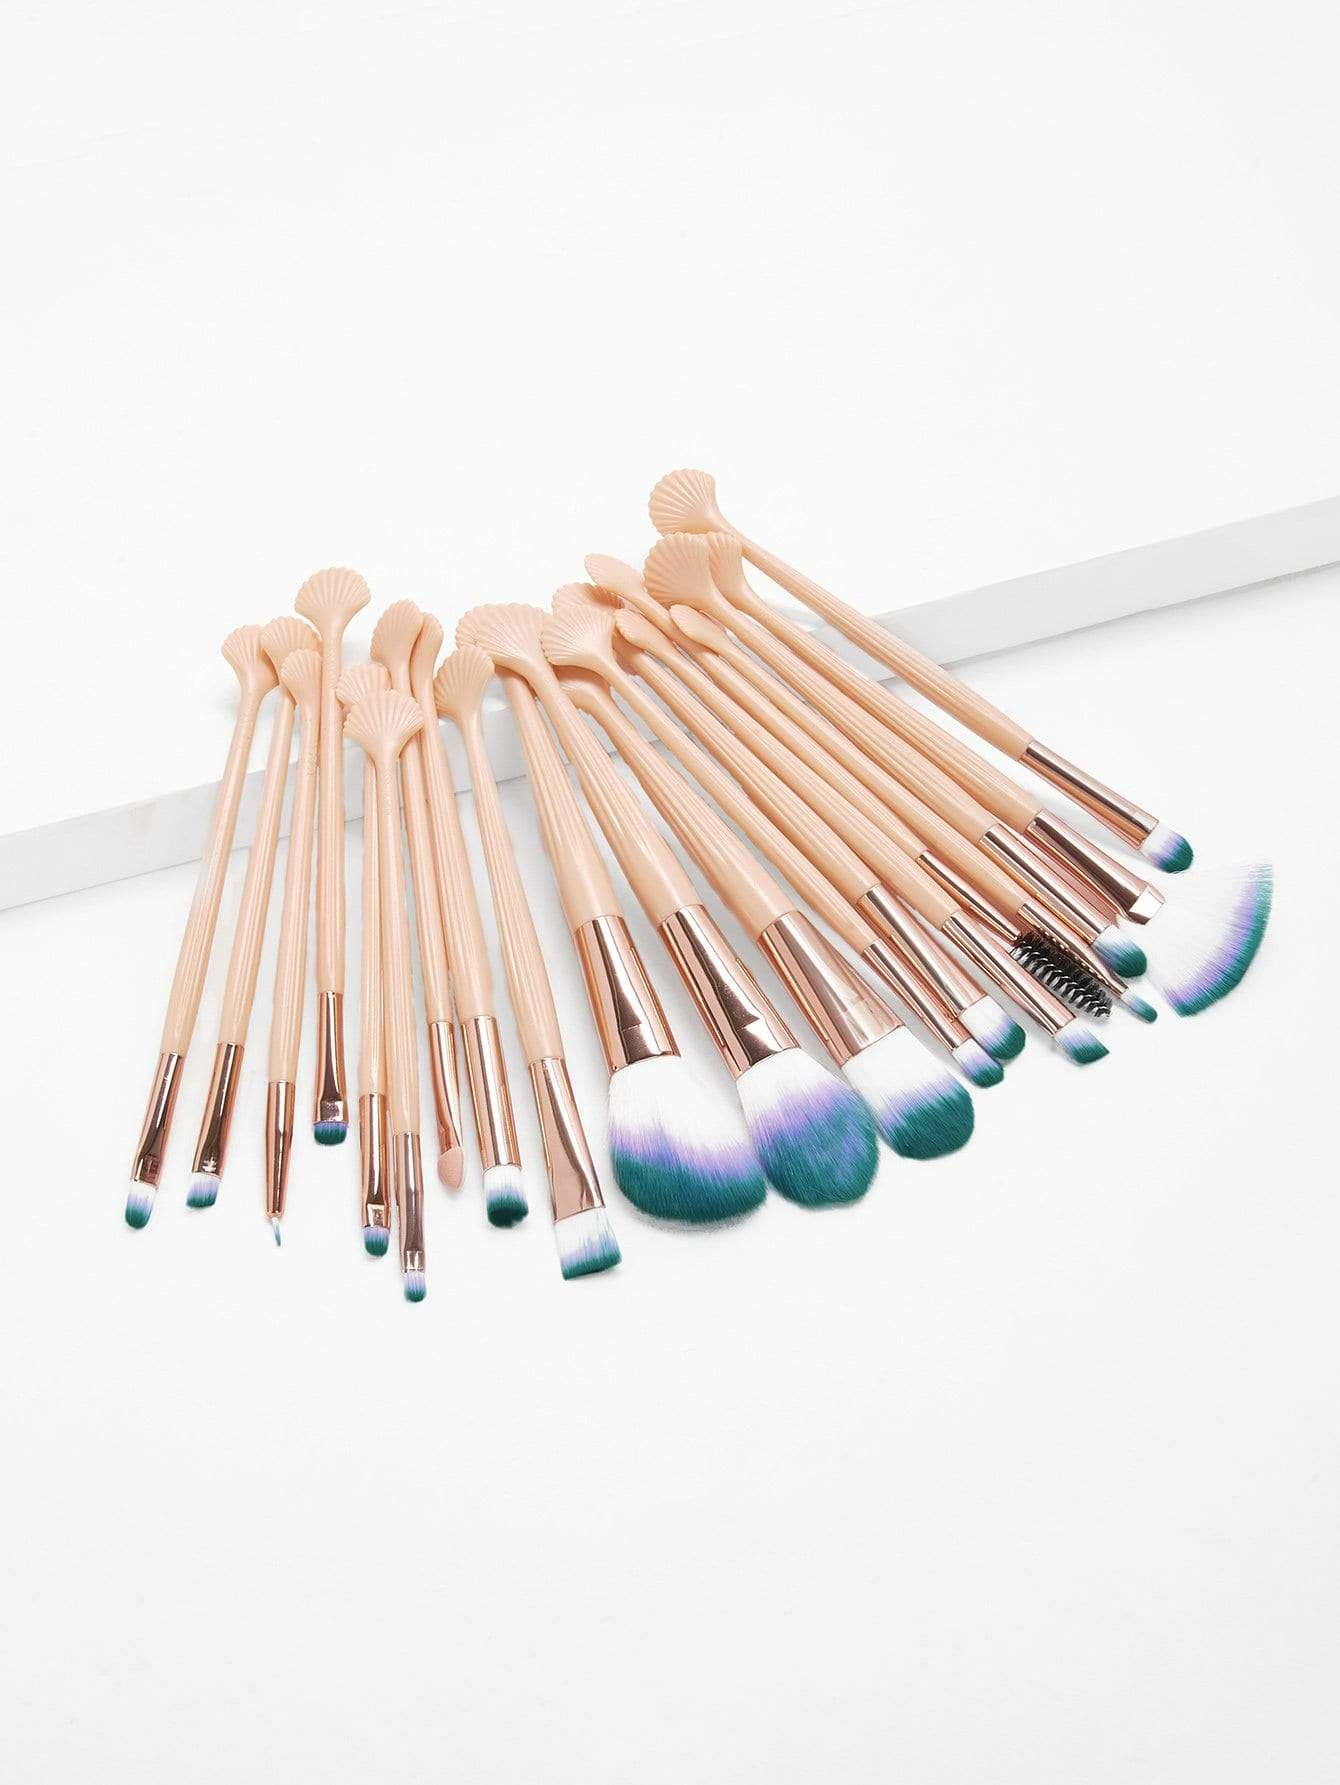 Shell Head Handle Makeup Brush 20Pcs - Makeup Brushes